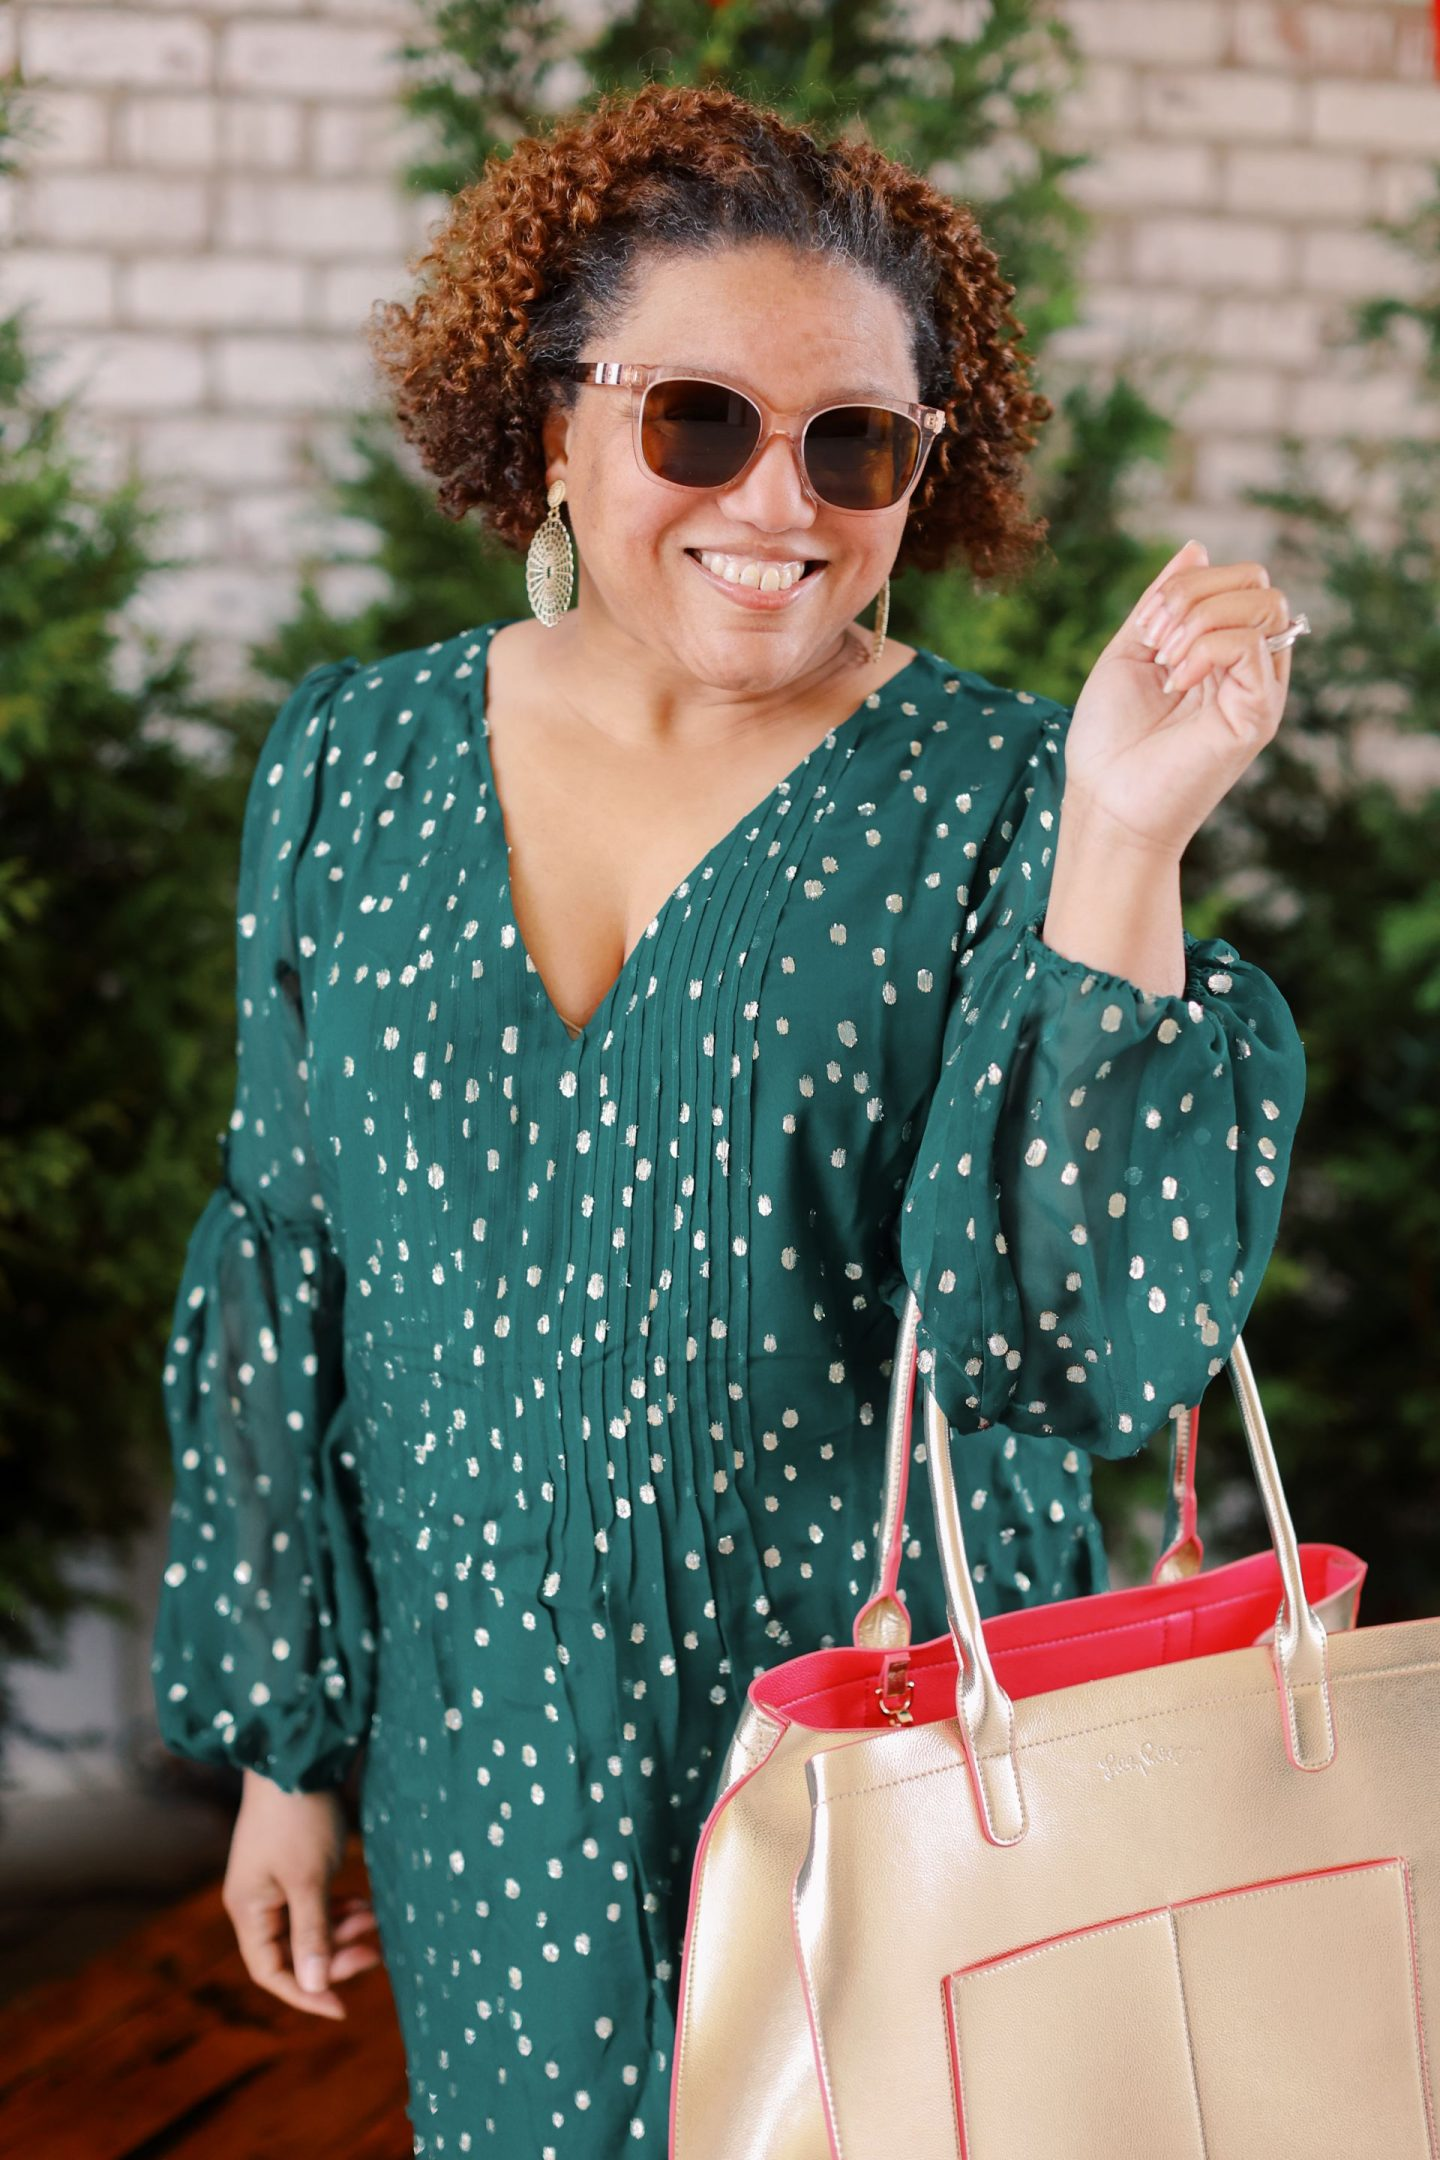 Lilly Pulitzer Sale by popular Kentucky fashion blog, Really Rynetta: image of a woman wearing a Lilly pulitzer dress with gold glitter heels and holding a gold Lilly Pulitzer tote bag.